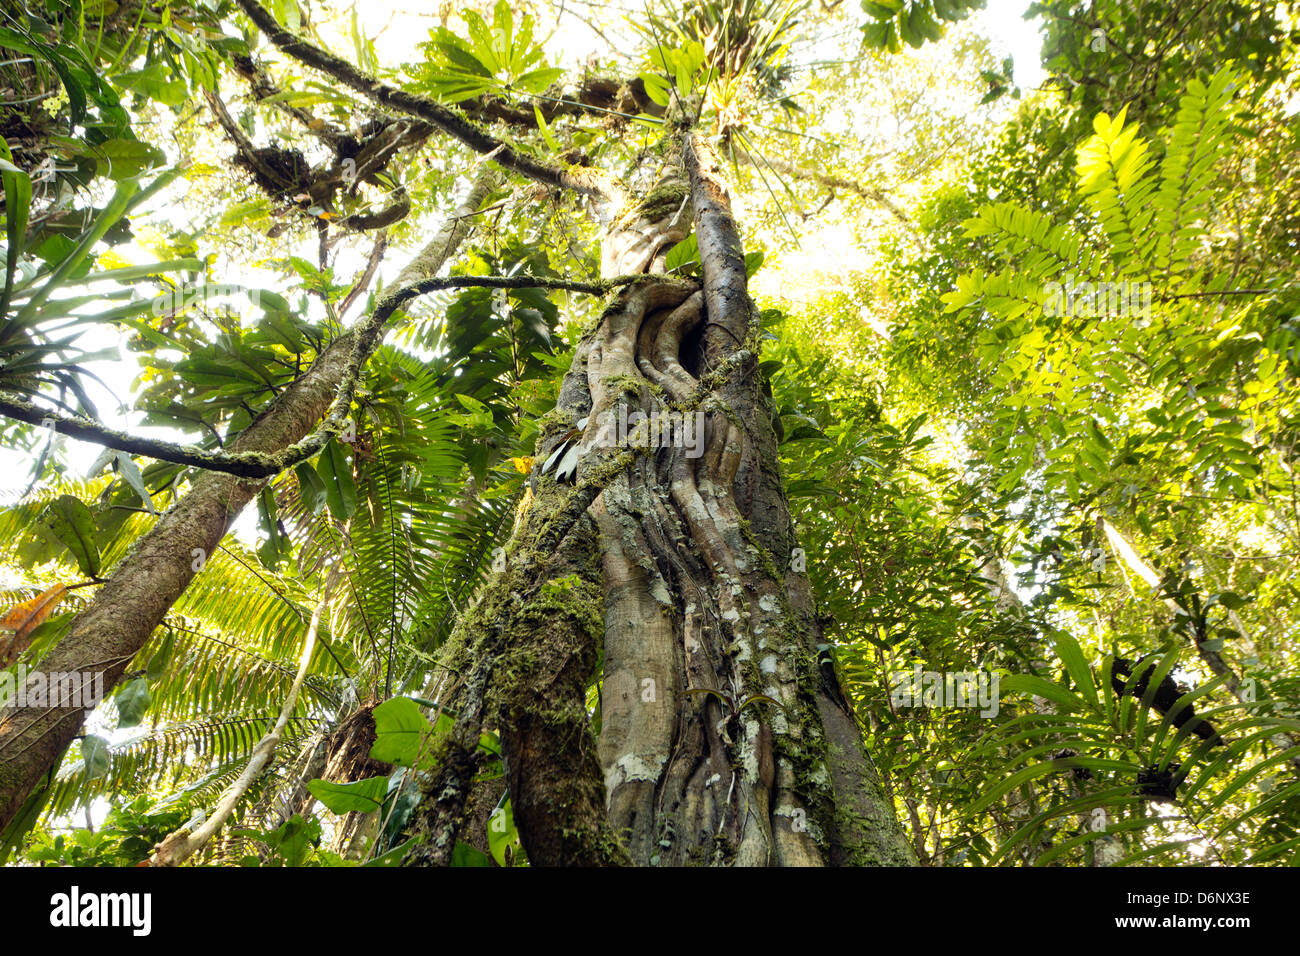 Looking up a liana tangled tree trunk to the rainforest canopy in Ecuador - Stock Image